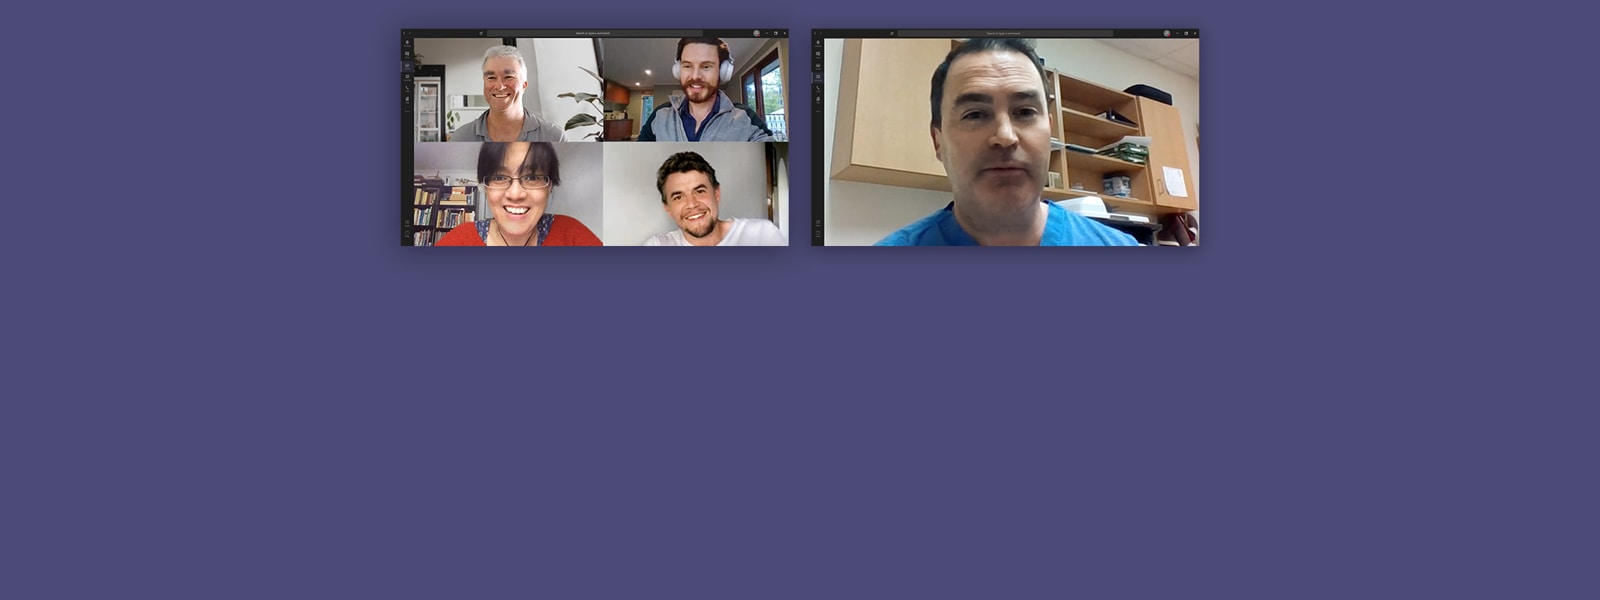 Five people work remotely using Microsoft Teams.